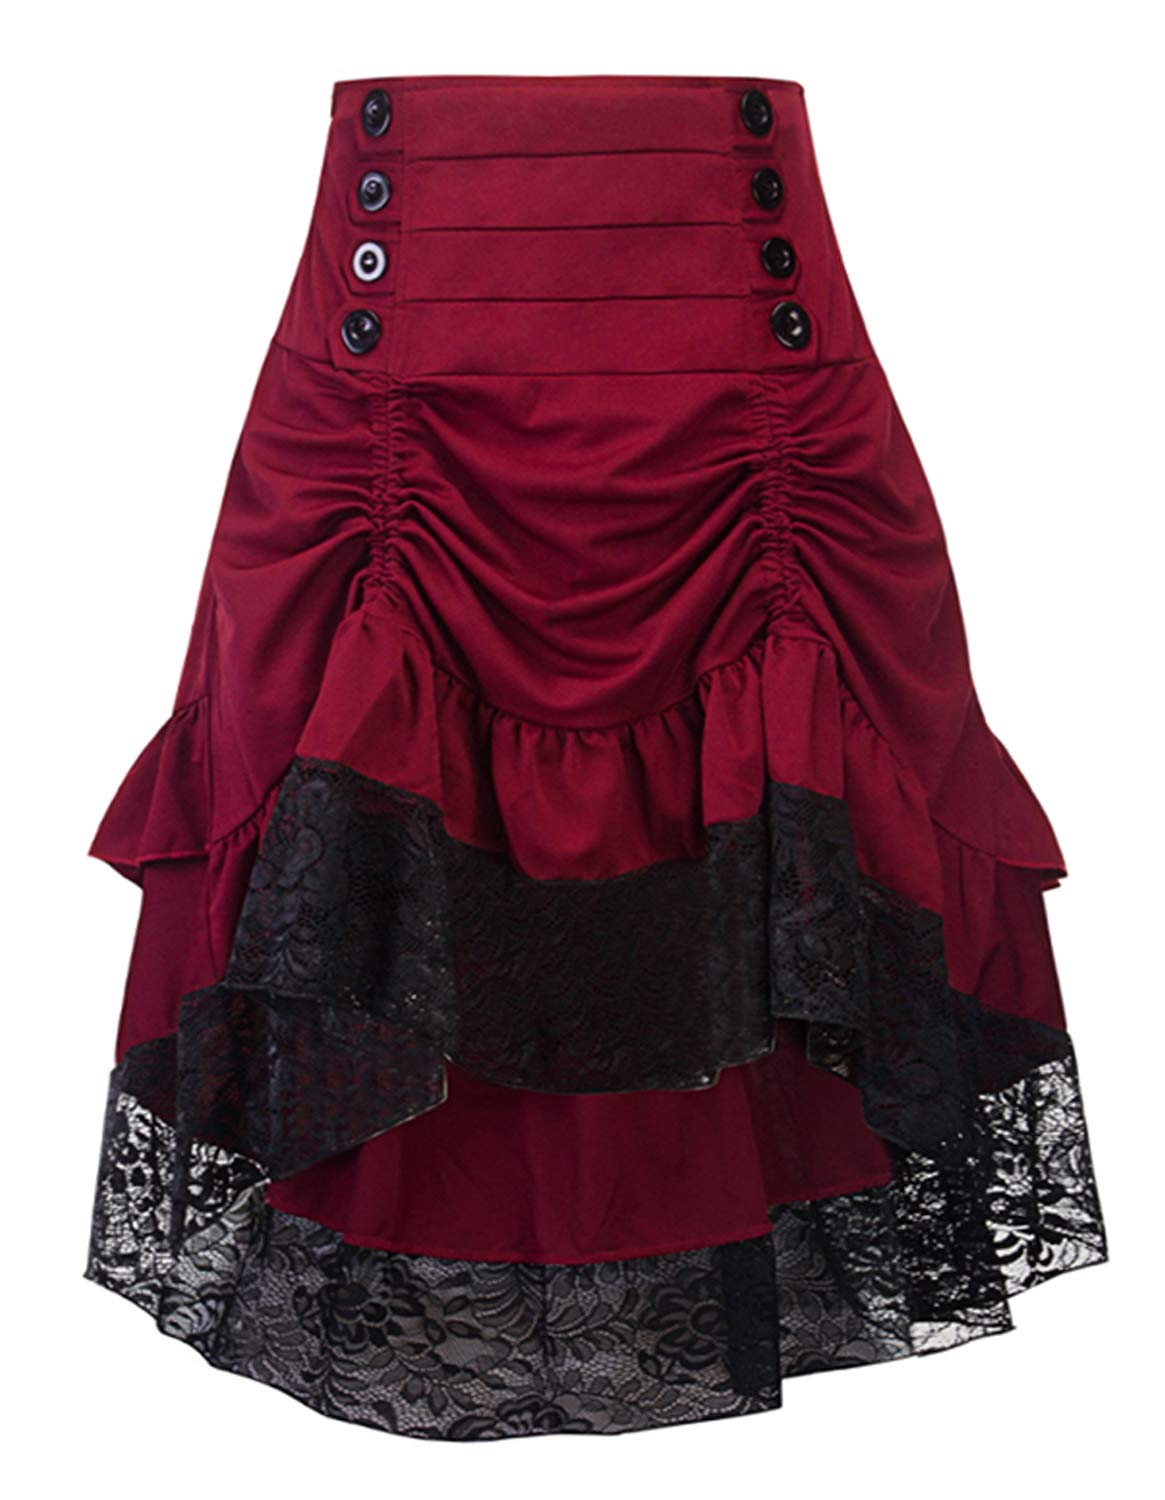 Burvogue Steampunk Skirt,Women Multi Layered Gothic High Low Skirt Vintage Outfits 3